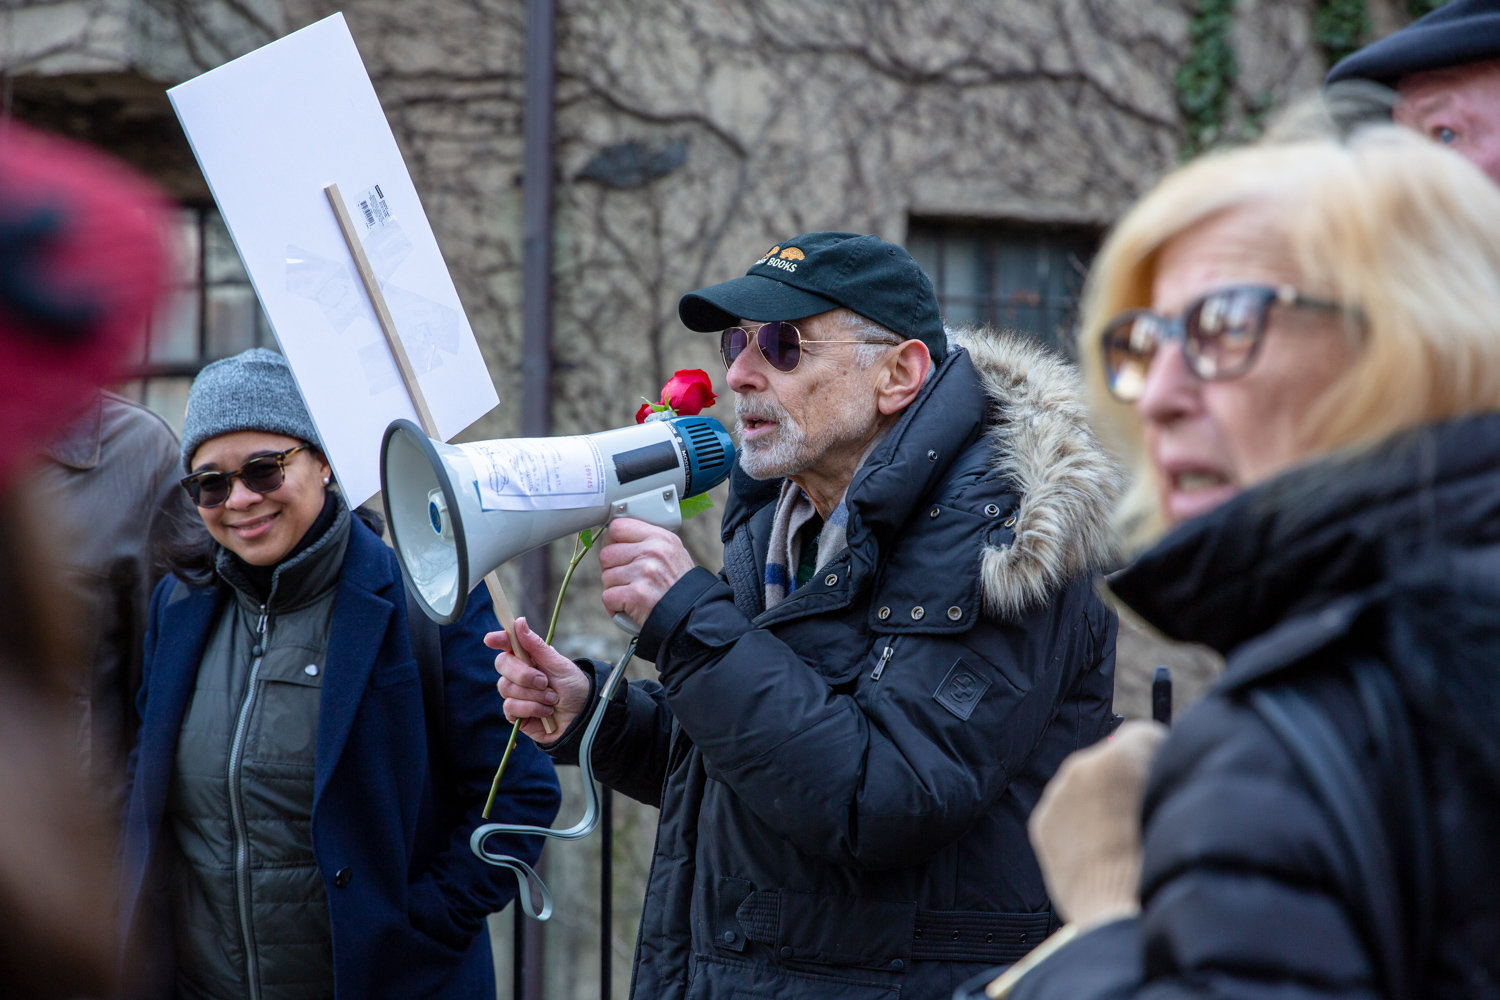 Perry Brass rallies a group of concerned neighbors in front of the sister buildings of the Villa Rosa Bonheur before leading the crowd to the threatened apartment building for a vigil in February.